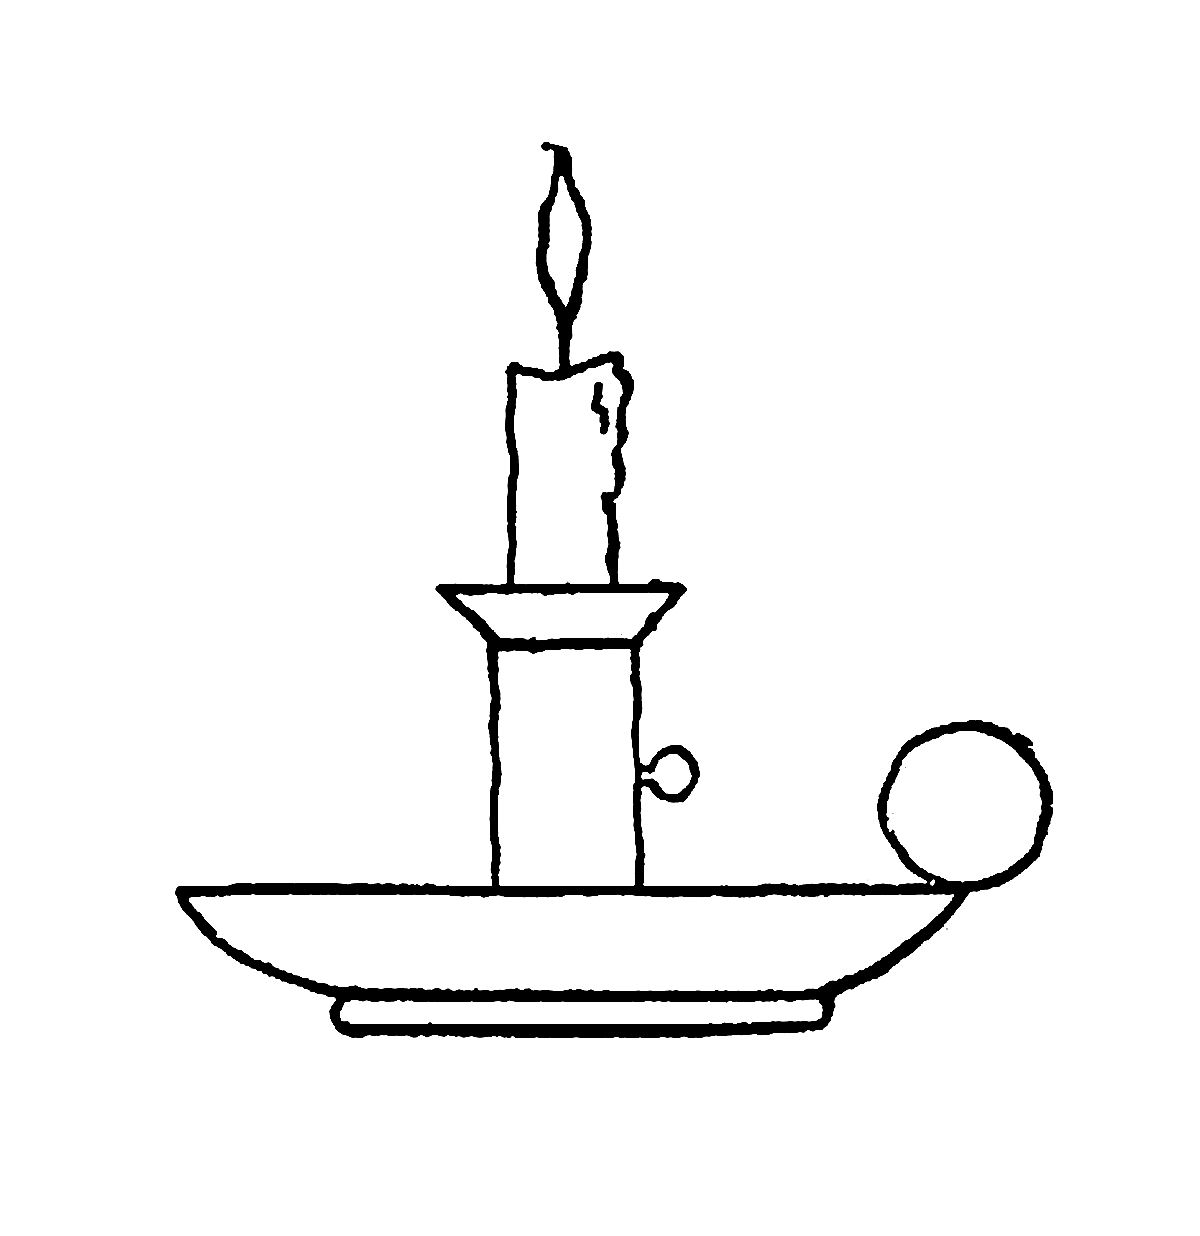 Digital Stamp Design: Free Light Digital Clip Art Oil Lamp Candle ... for Oil Lamp Clip Art  lp00lyp